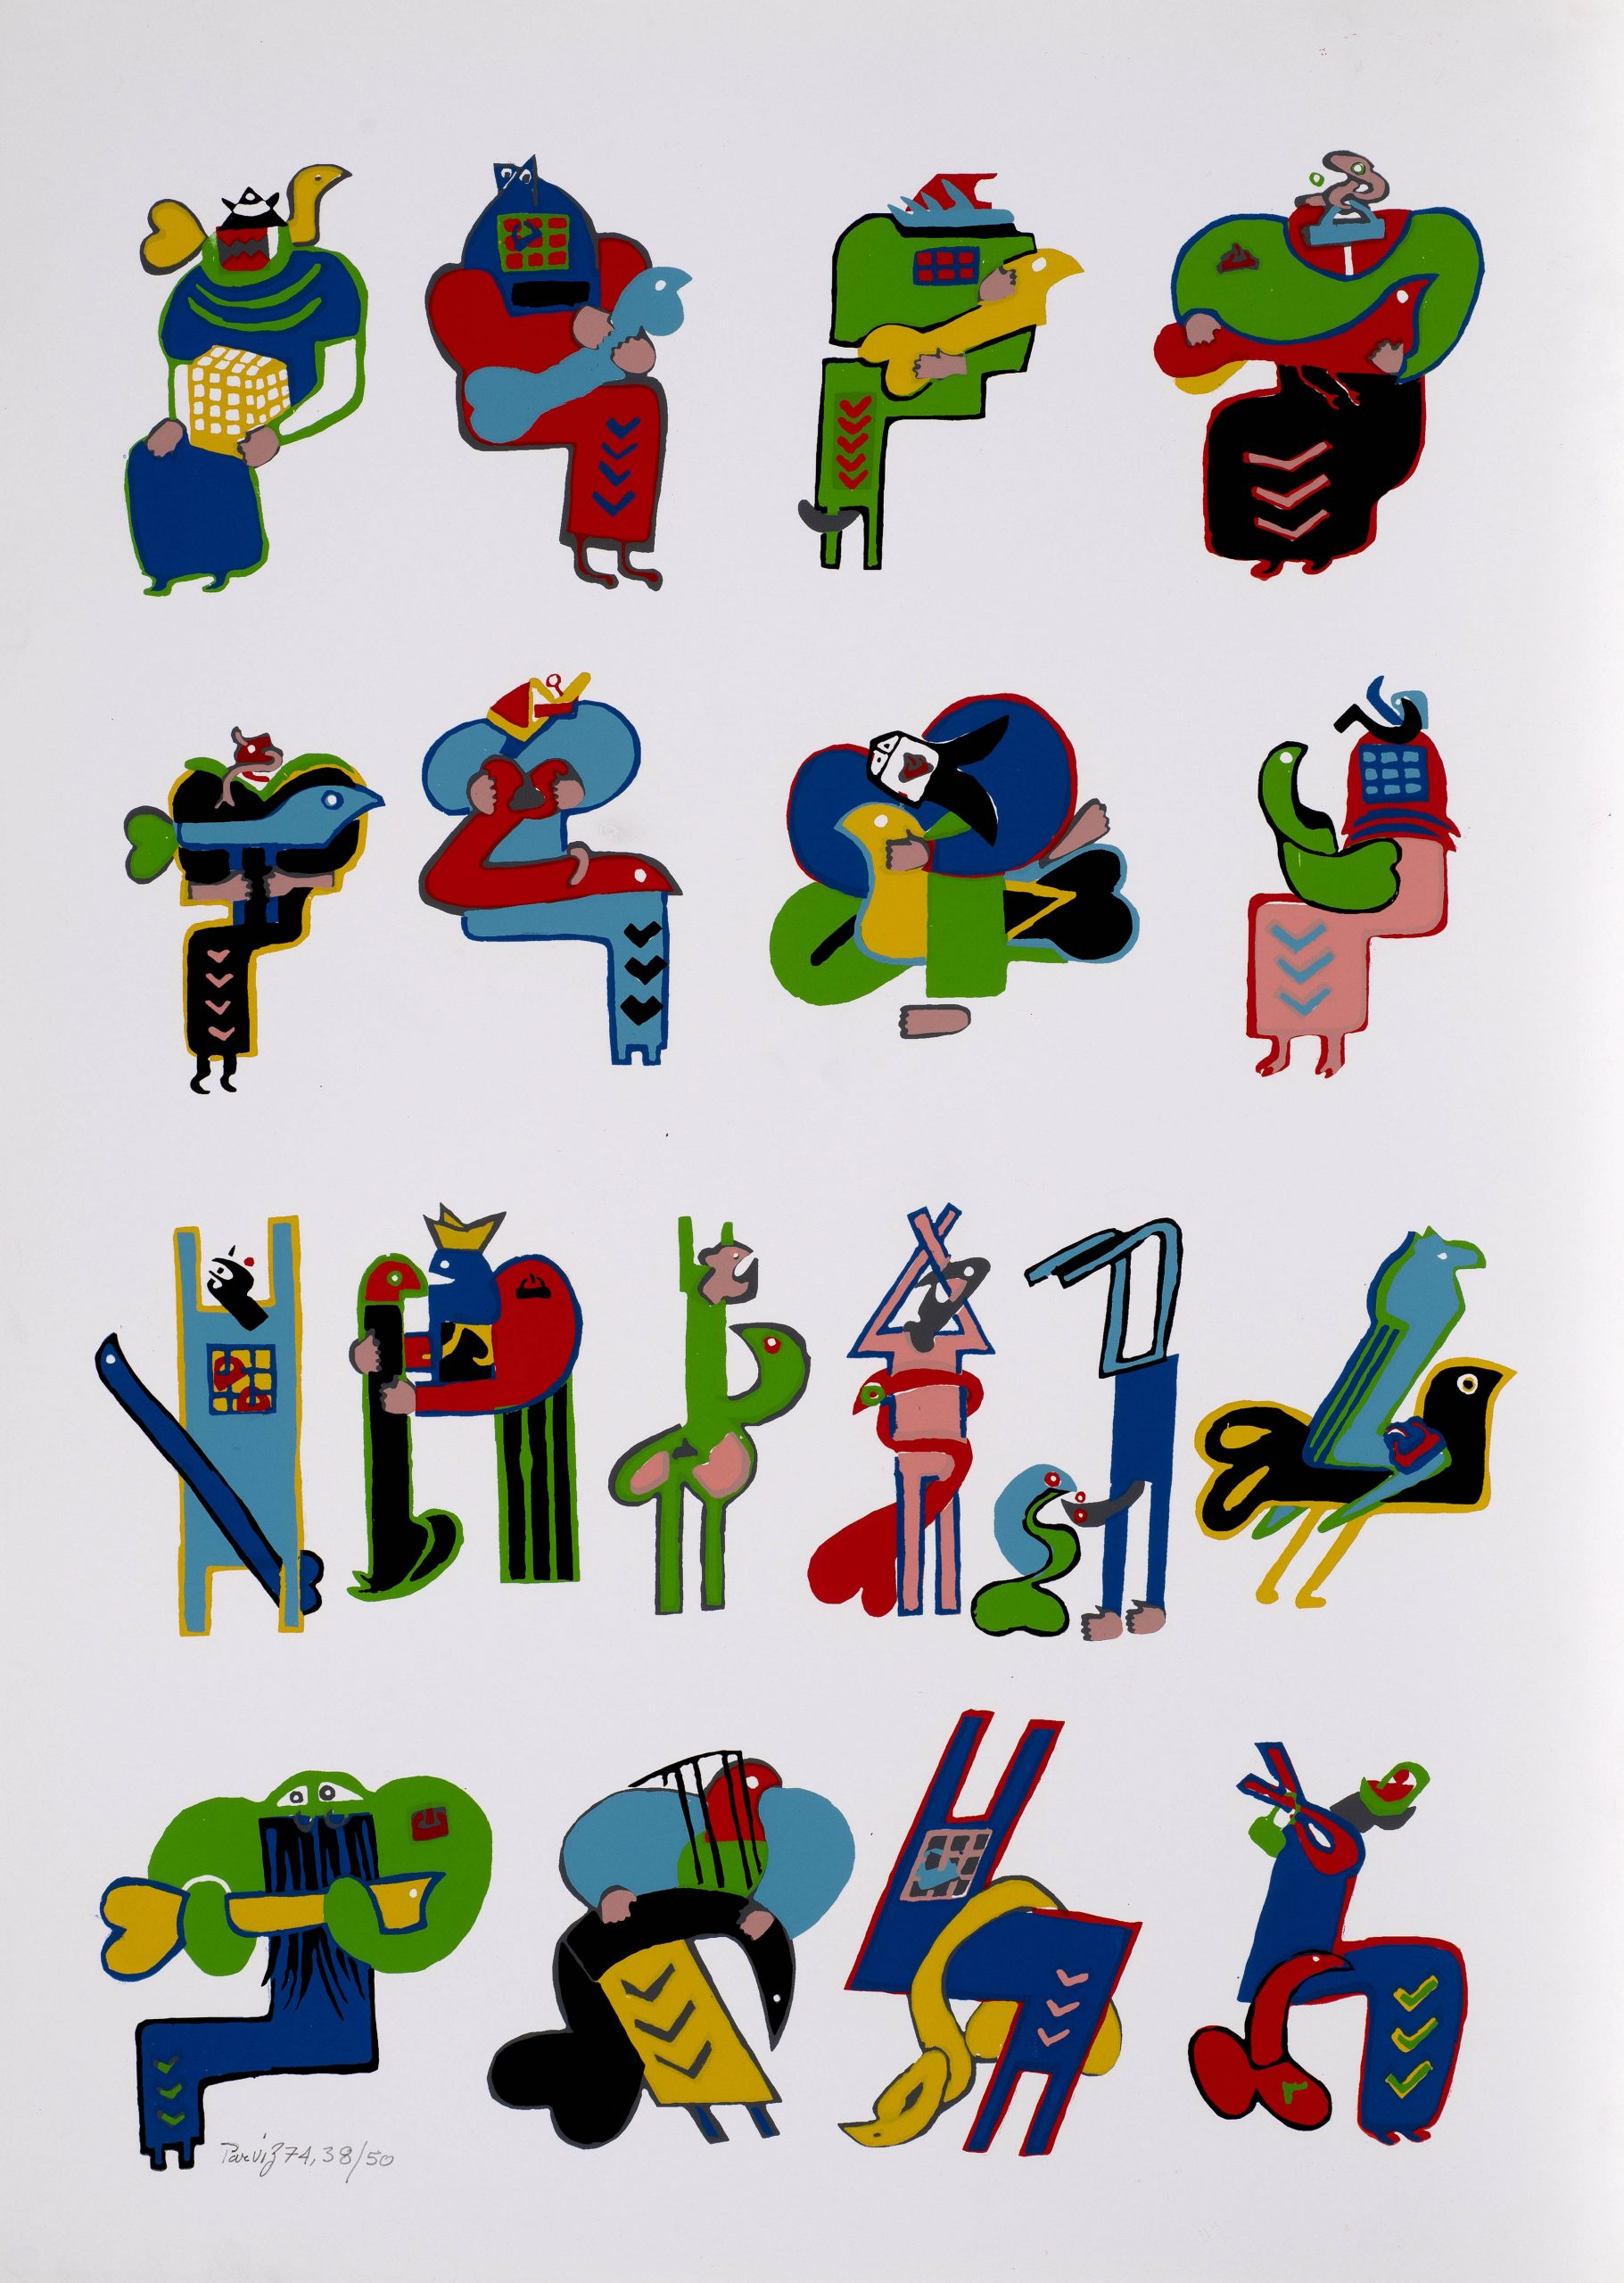 POET & BIRDS, 1974   Screenprint on paper   Signed, dated and editioned 'Parviz 74' lower left   From an edition of 50   70 x 50 cm (27 1/2 x 19 3/4 in)